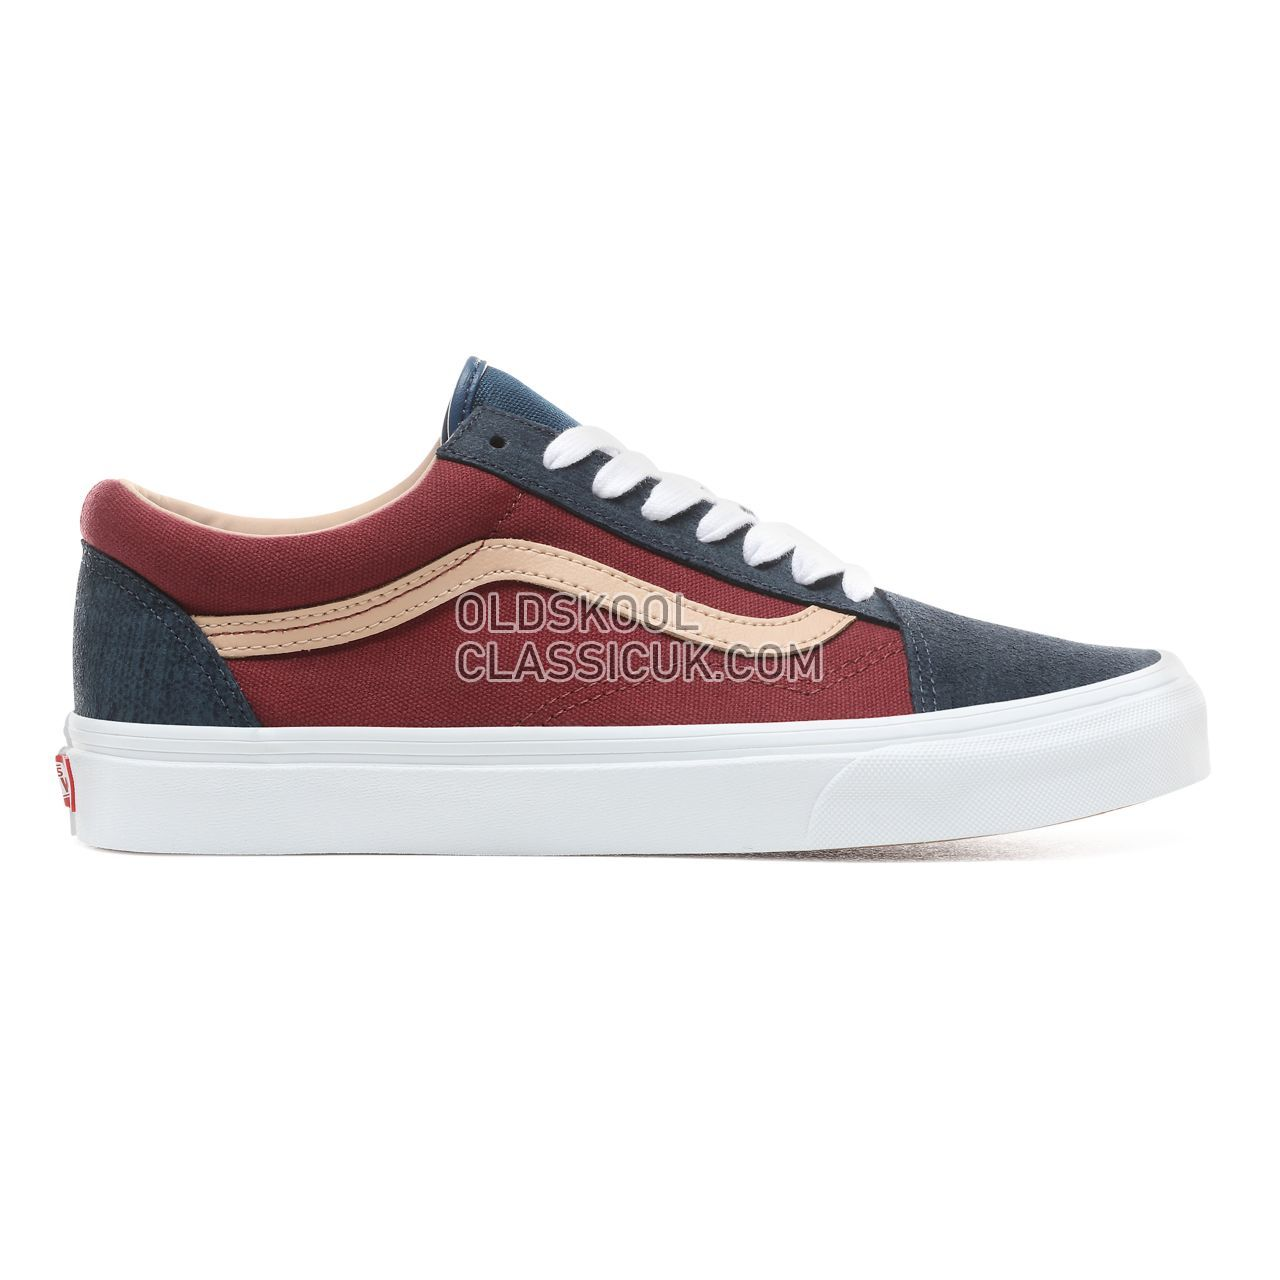 Vans Textured Suede Old Skool Sneakers Mens Womens Unisex (Textured Suede) Sailor Blue/Port VN0A38G1VMN Shoes